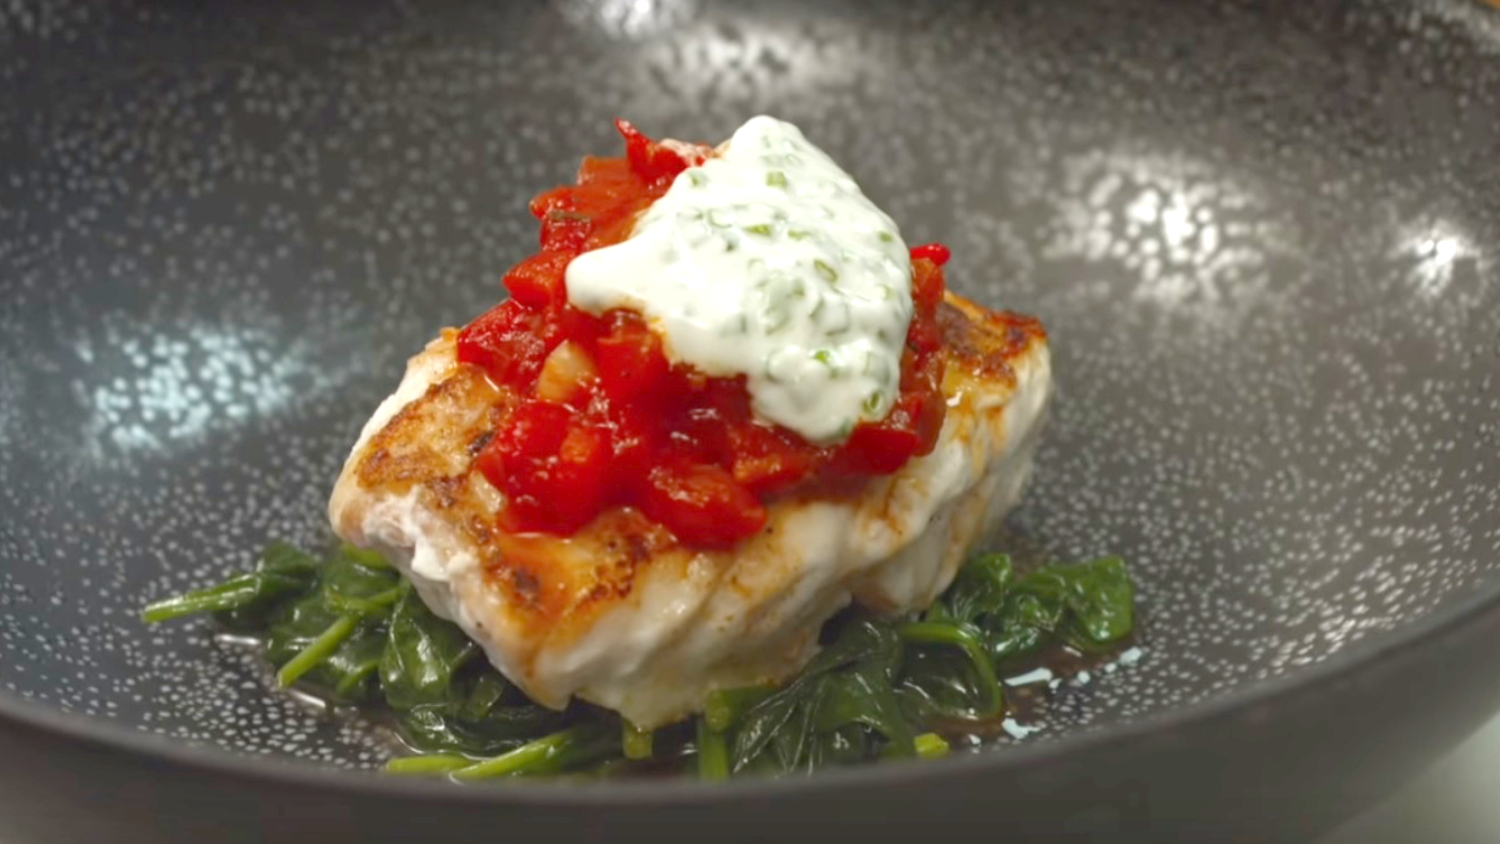 Celebrity Irish chef Derry Clarke shares his Hake, Tomato, Chilli & Wilted Spinach recipe for Fish Supper 2019